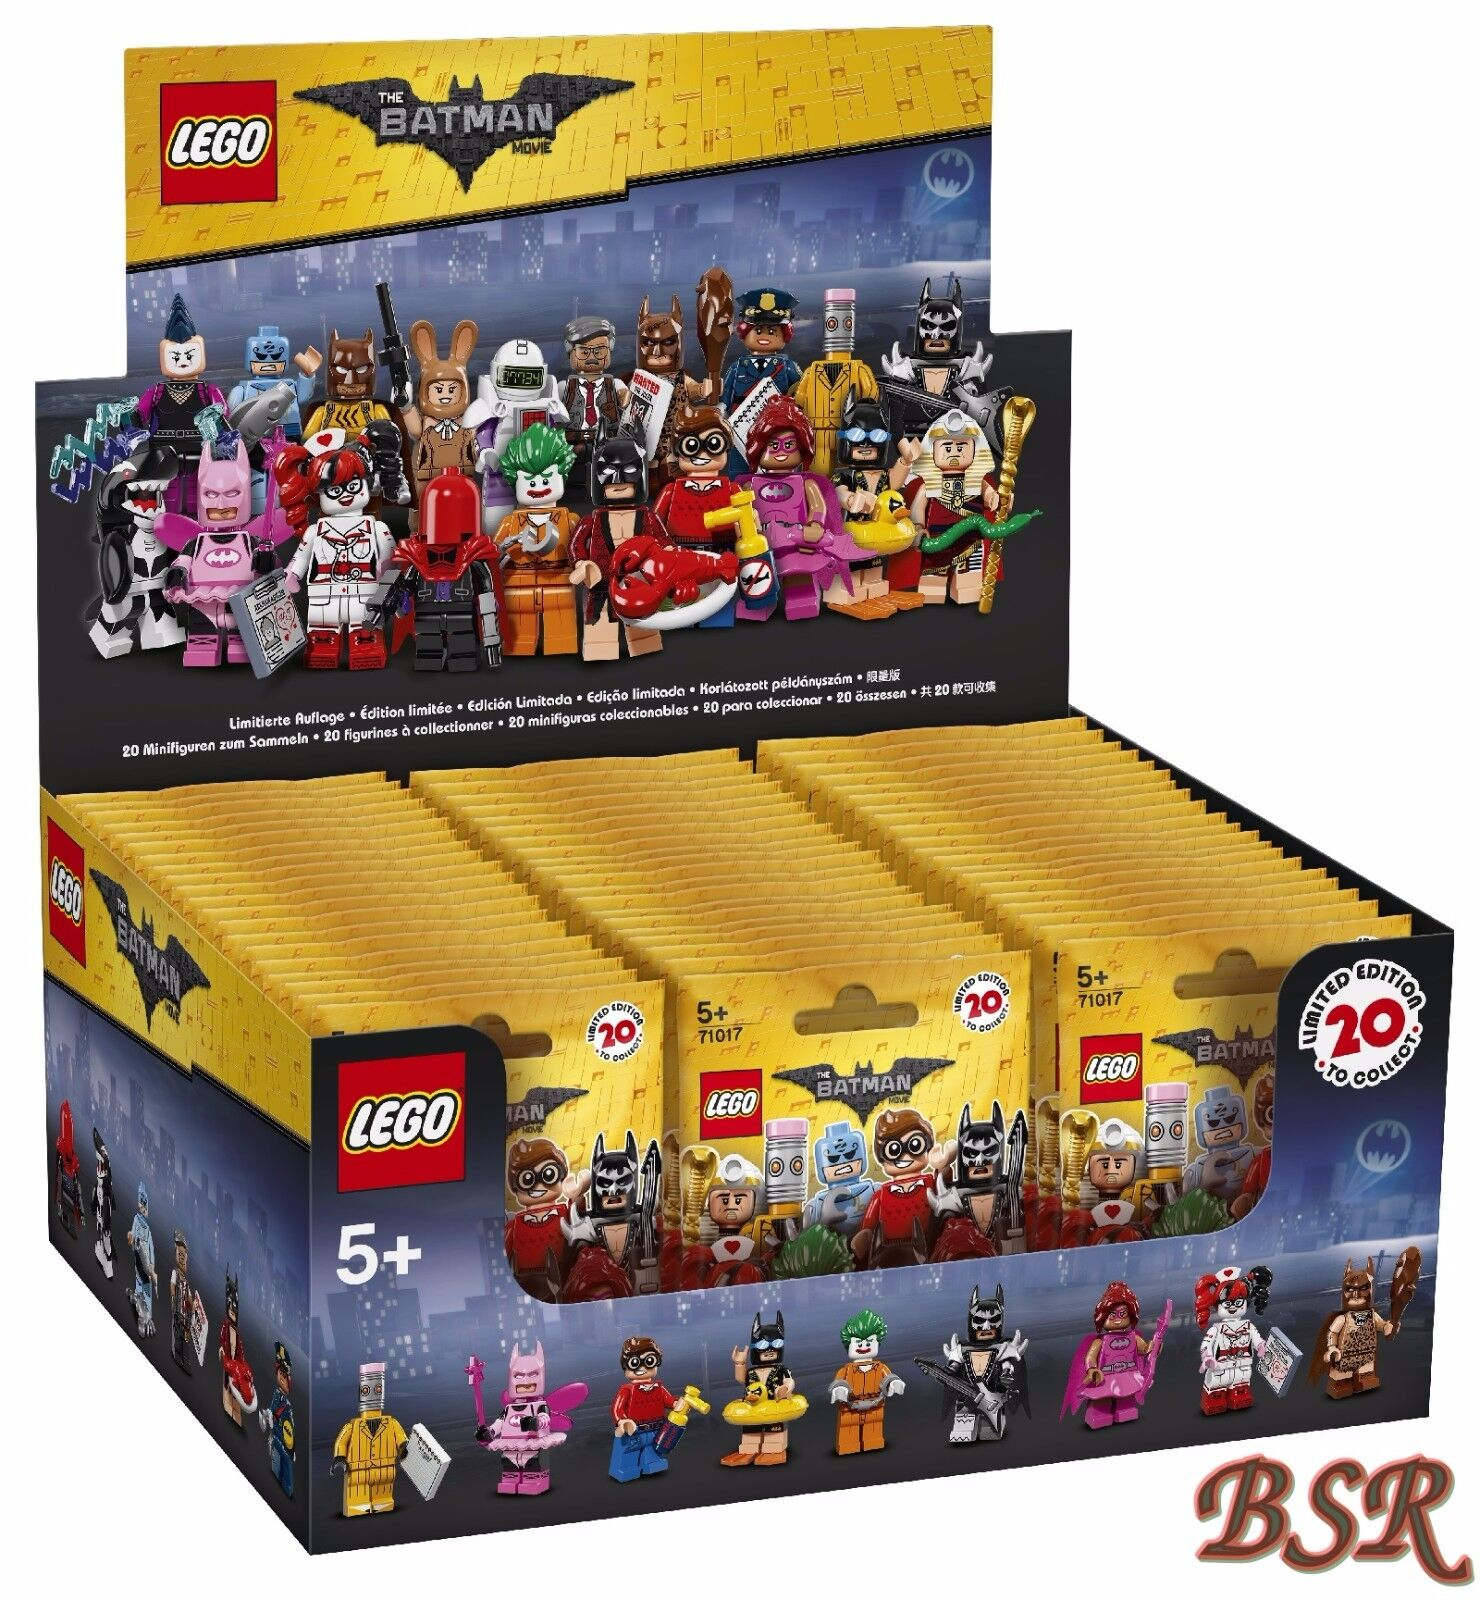 71017 LEGO® komplettes - Display versiegelt -THE LEGO® BATMAN MOVIE  60 Tüten